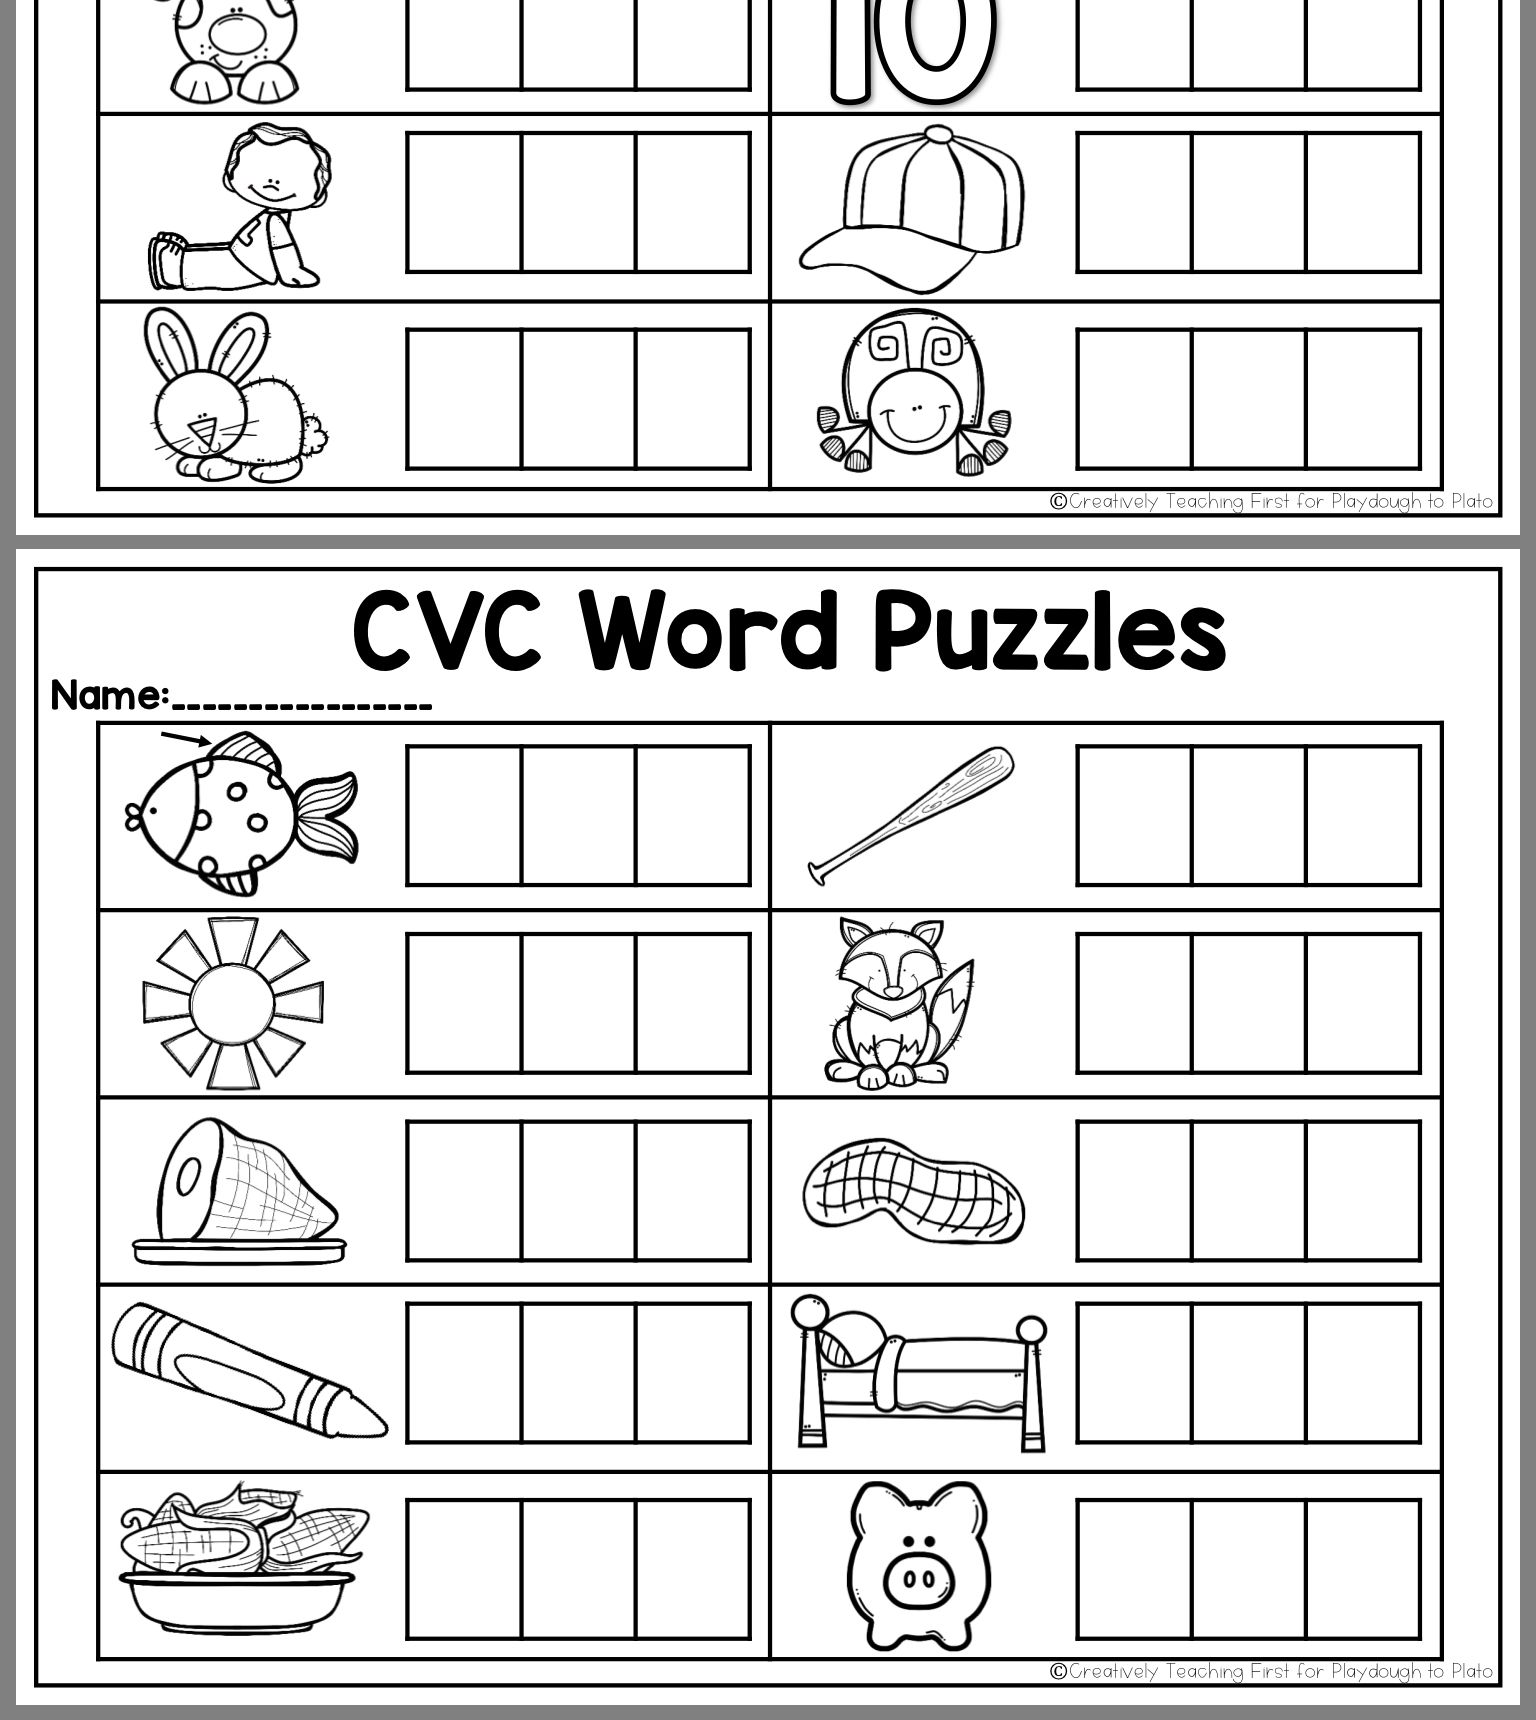 Pin By P Owens On Preschool Worksheet In